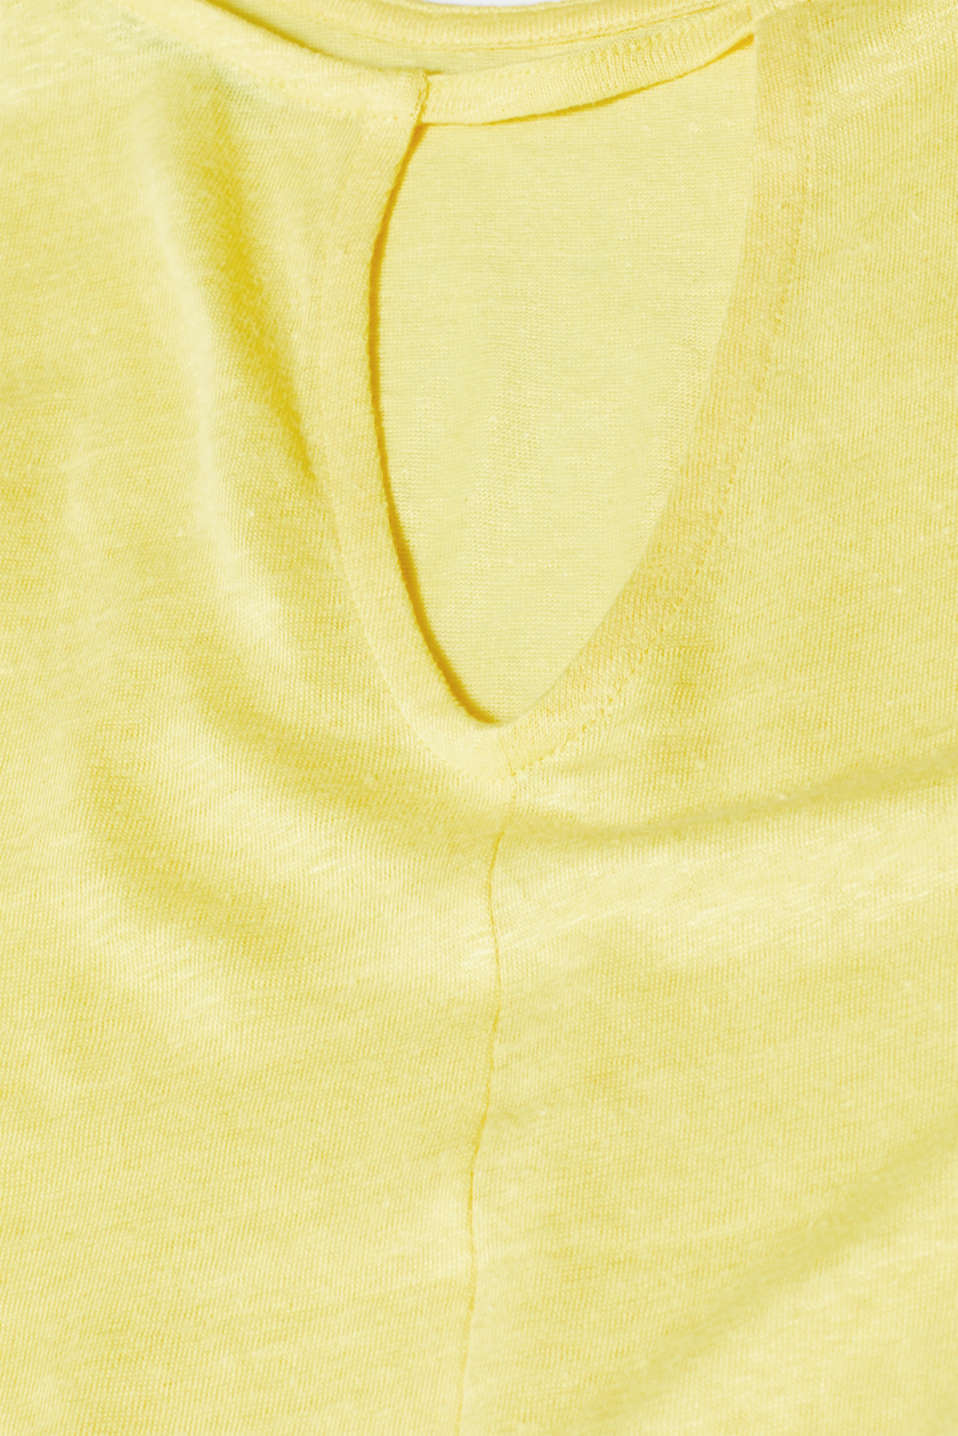 Vest with a cut out, made of 100% linen, BRIGHT YELLOW, detail image number 4